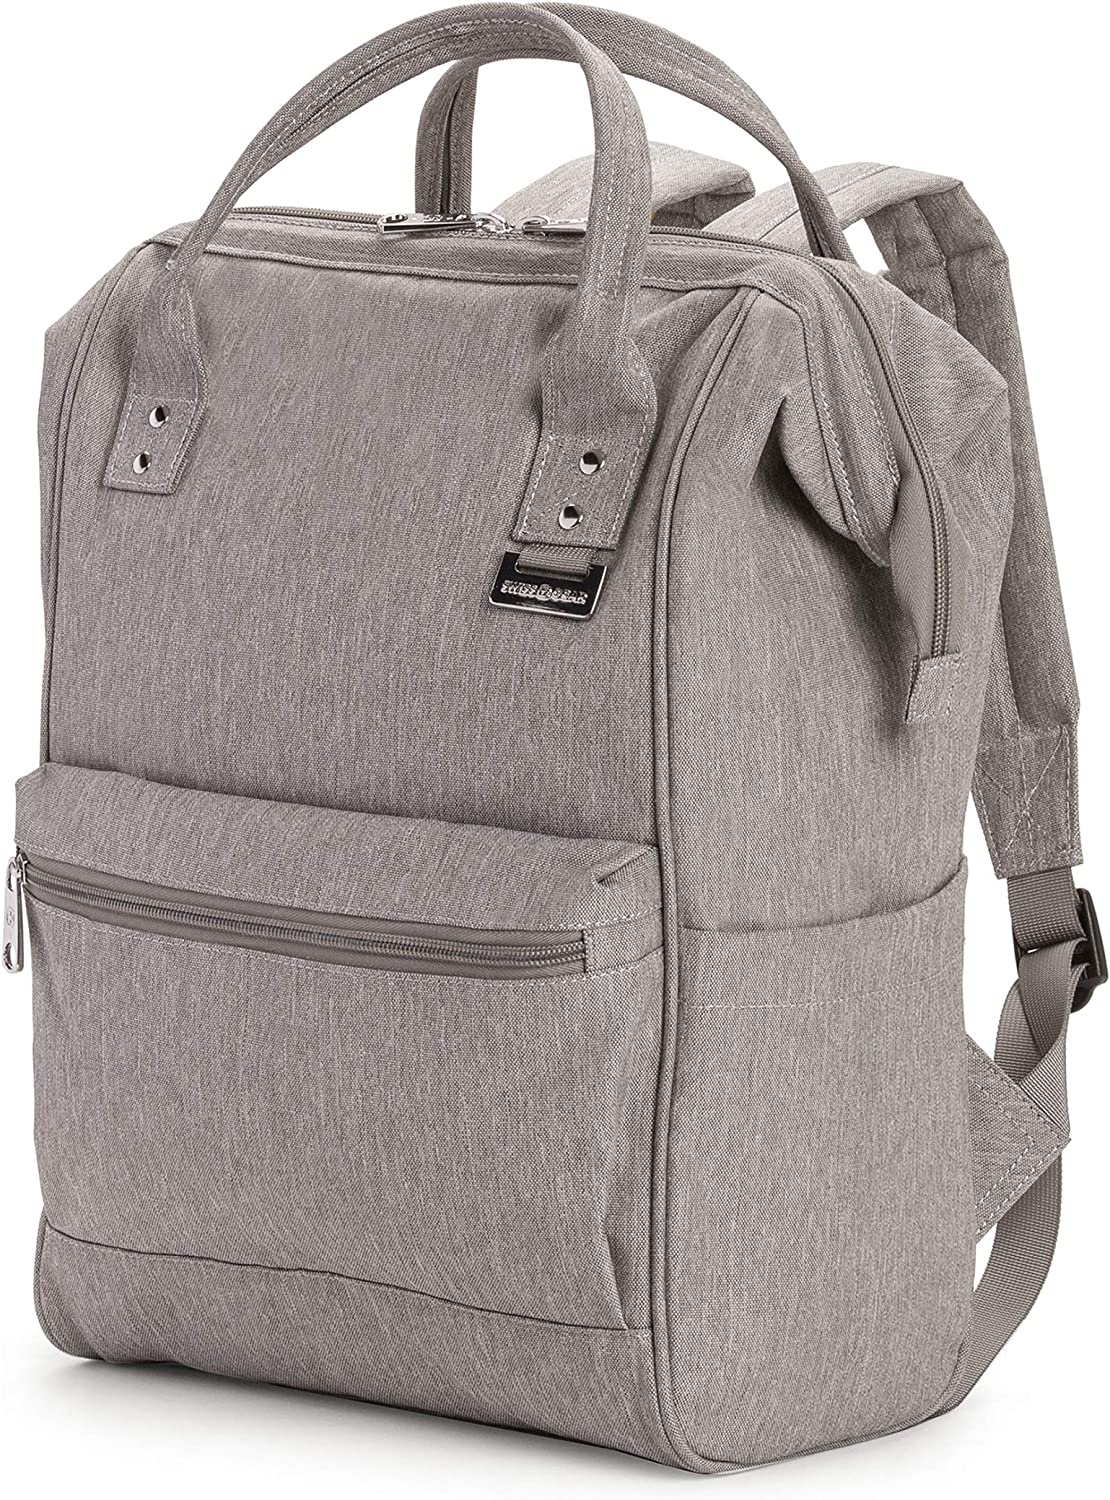 SWISSGEAR 3576 Laptop Backpack | Fits 12 Inch Laptop and Tablet